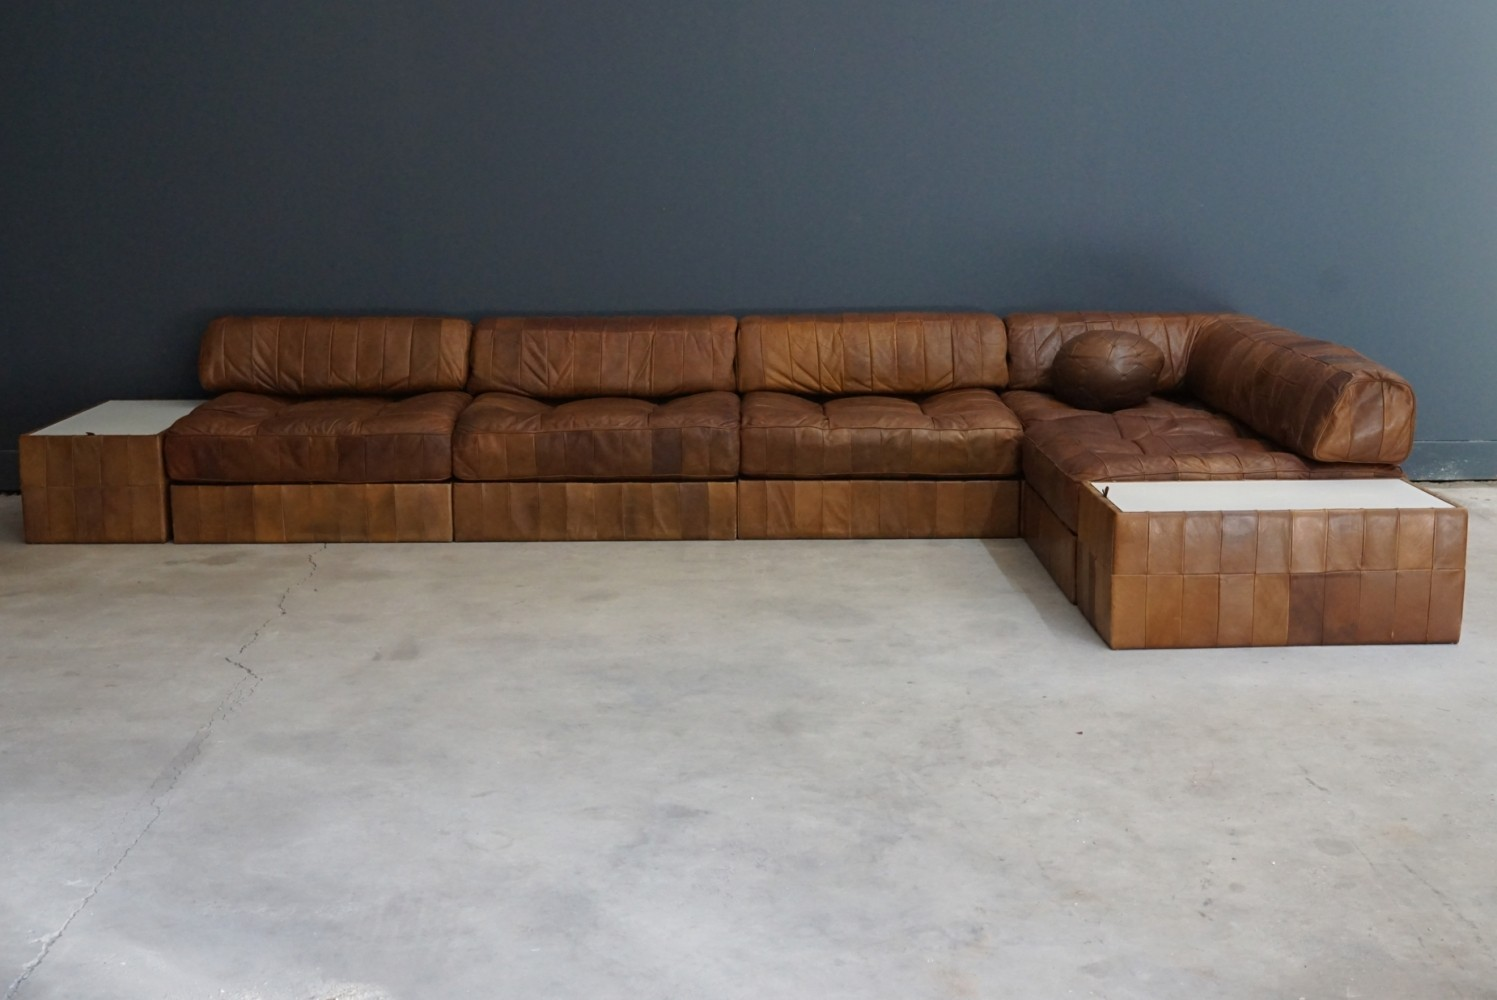 Awesome Wk Seating Group By De Sede For Wk Mbel S With Wk Sofa With Baxter  Mbel